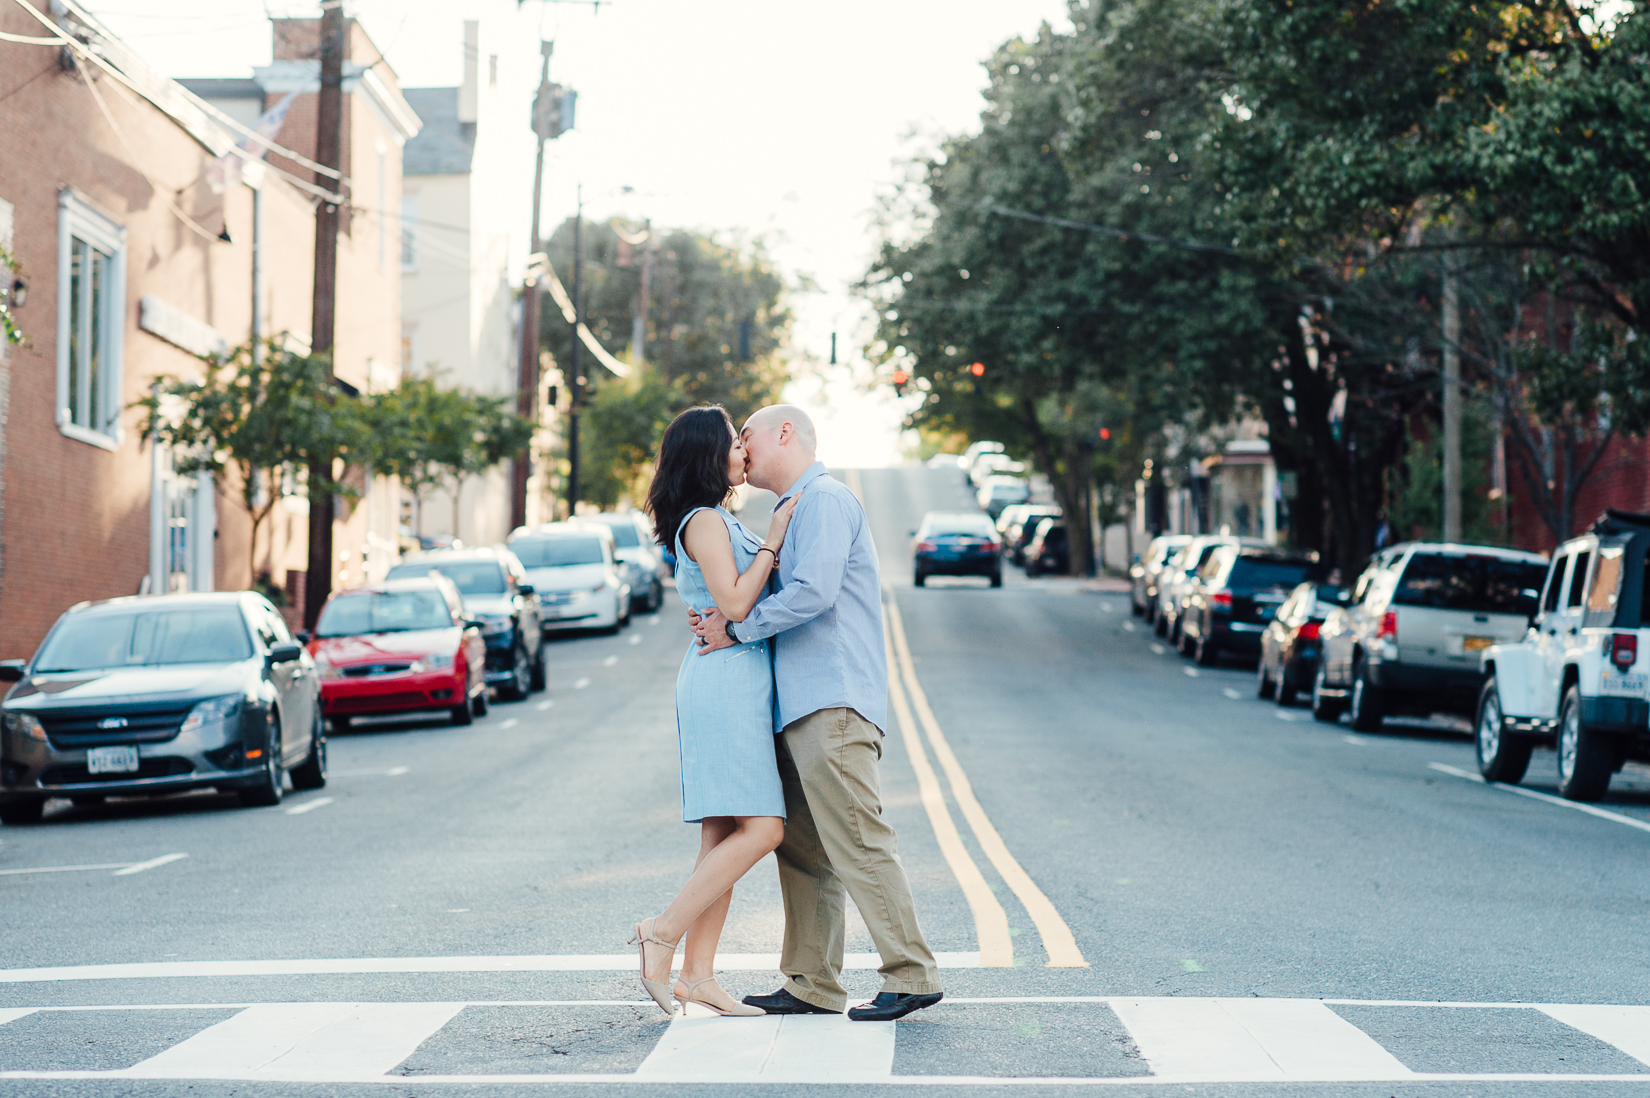 engagement_downtown_fredericksburg_virginiaweddingphotographer_youseephotography_HelenPaul (19).jpg